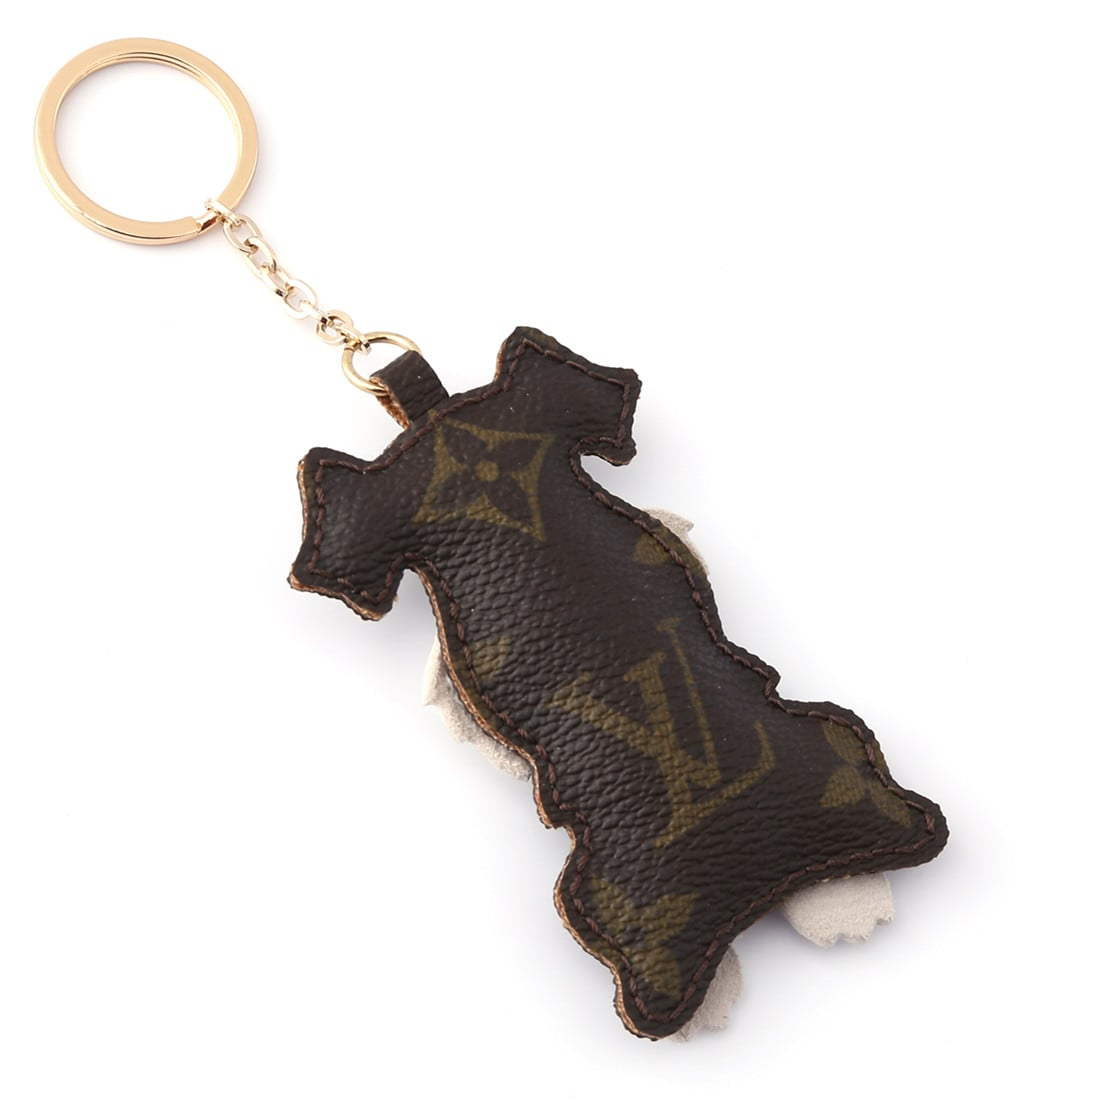 Upcycled Louis Vuitton Cute Schnauzer Keychain